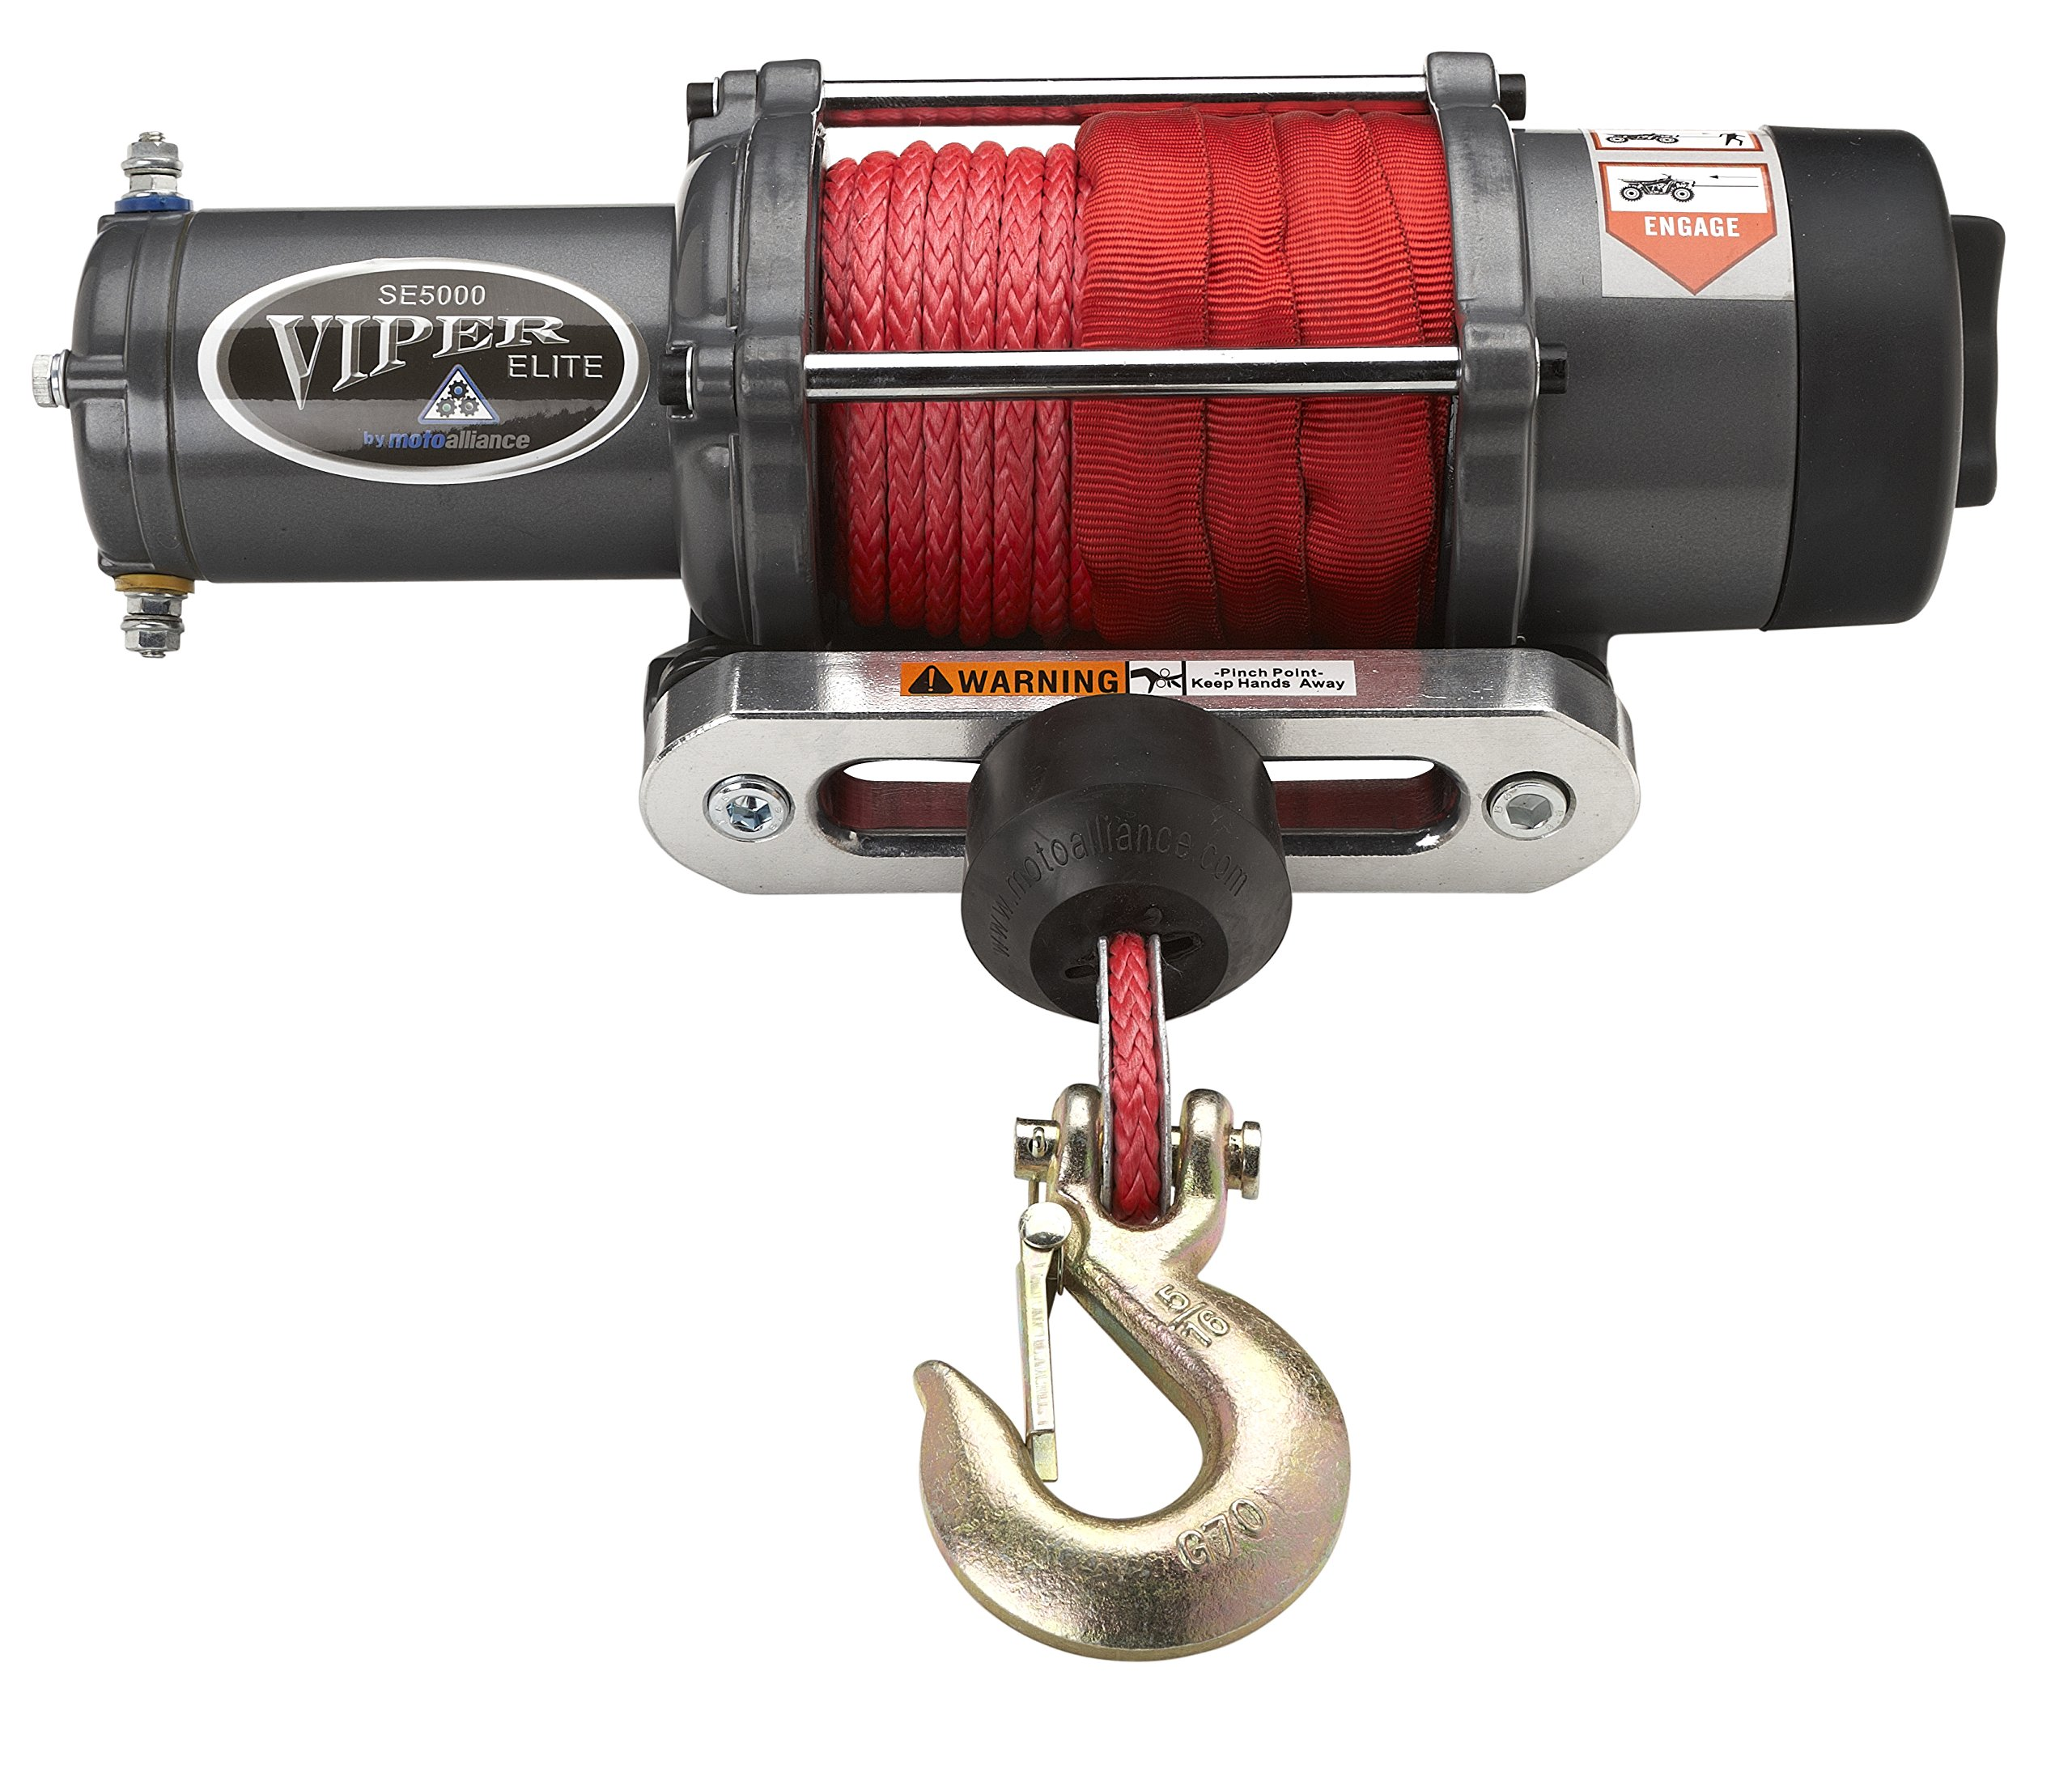 VIPER Elite 5000lb UTV Winch w/ 65 feet RED AmSteel-Blue Synthetic Rope